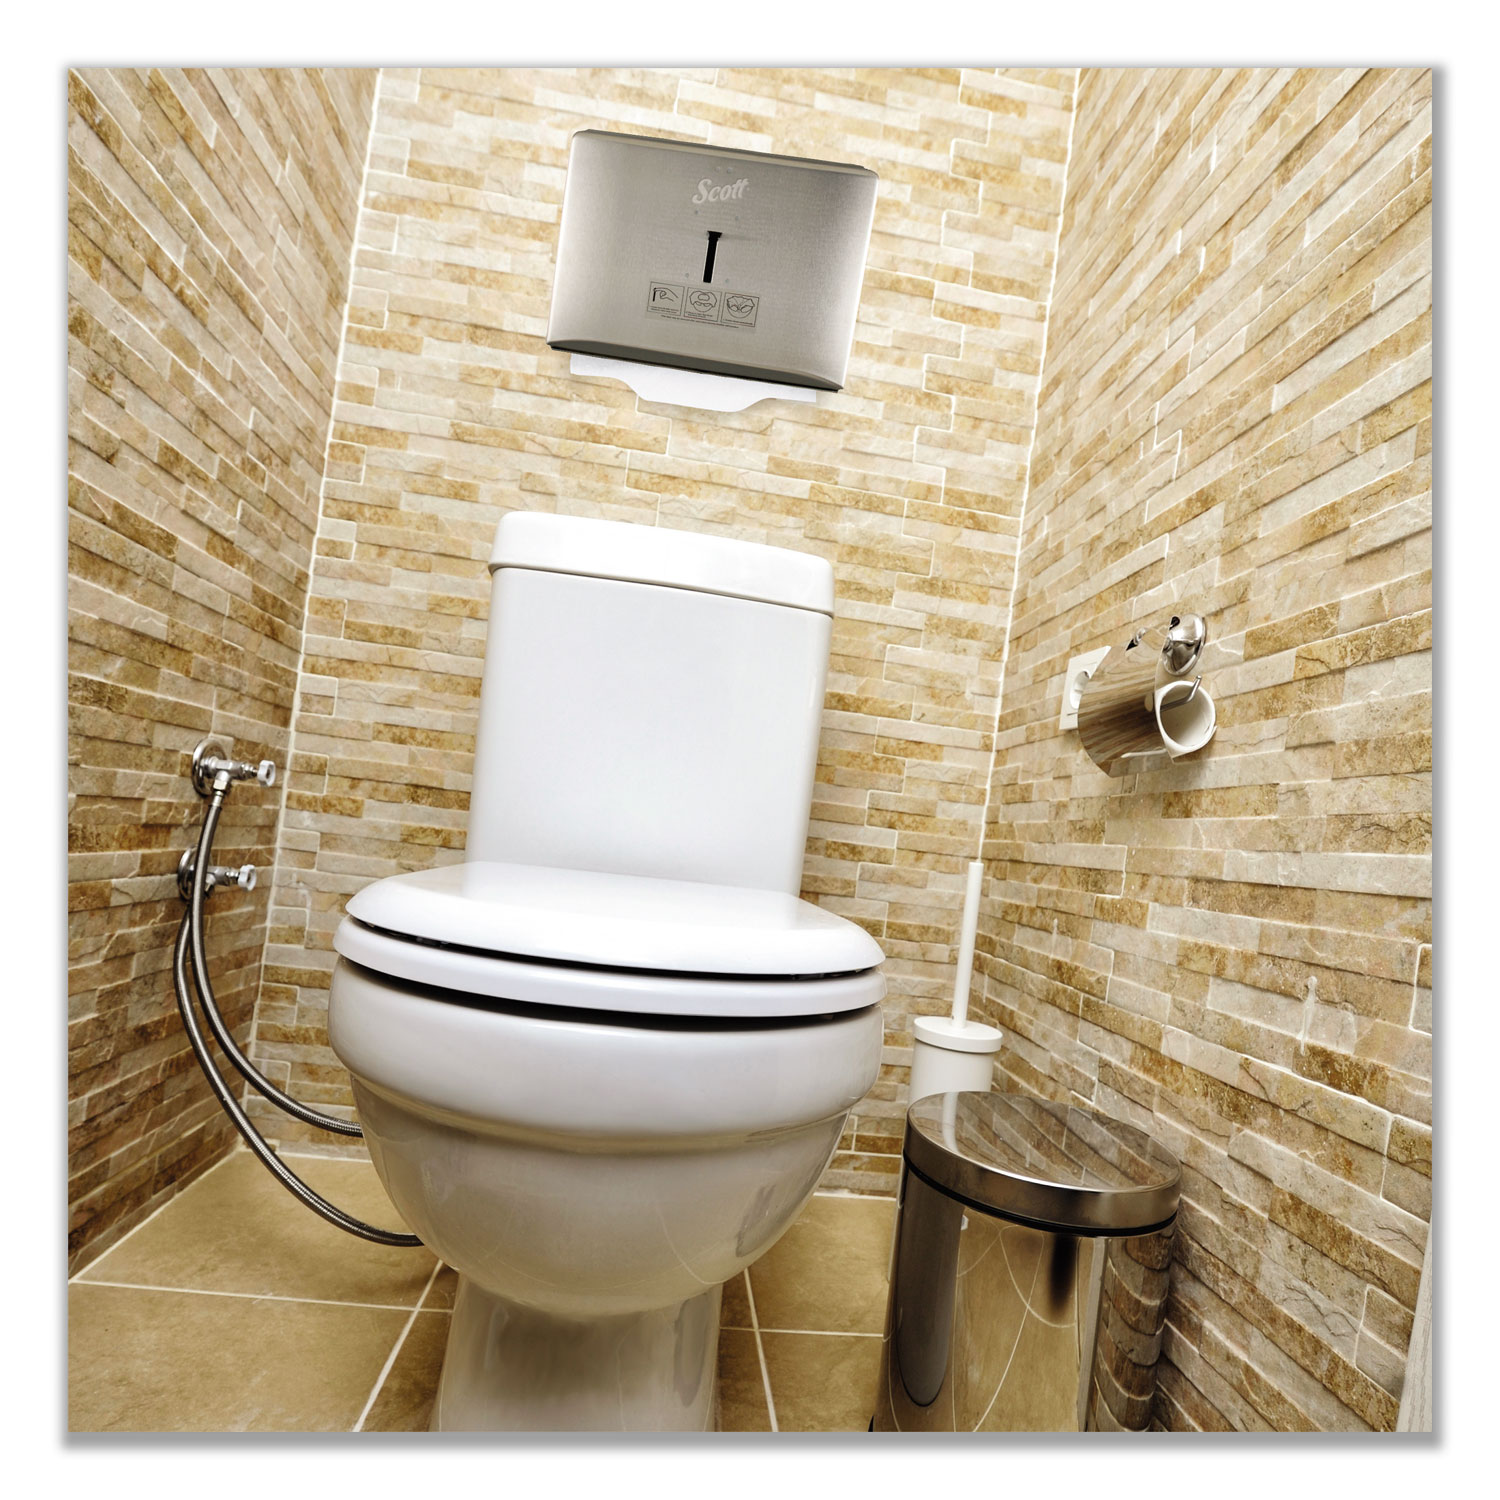 Personal Seat Toilet Seat Cover Dispenser Stainless Steel